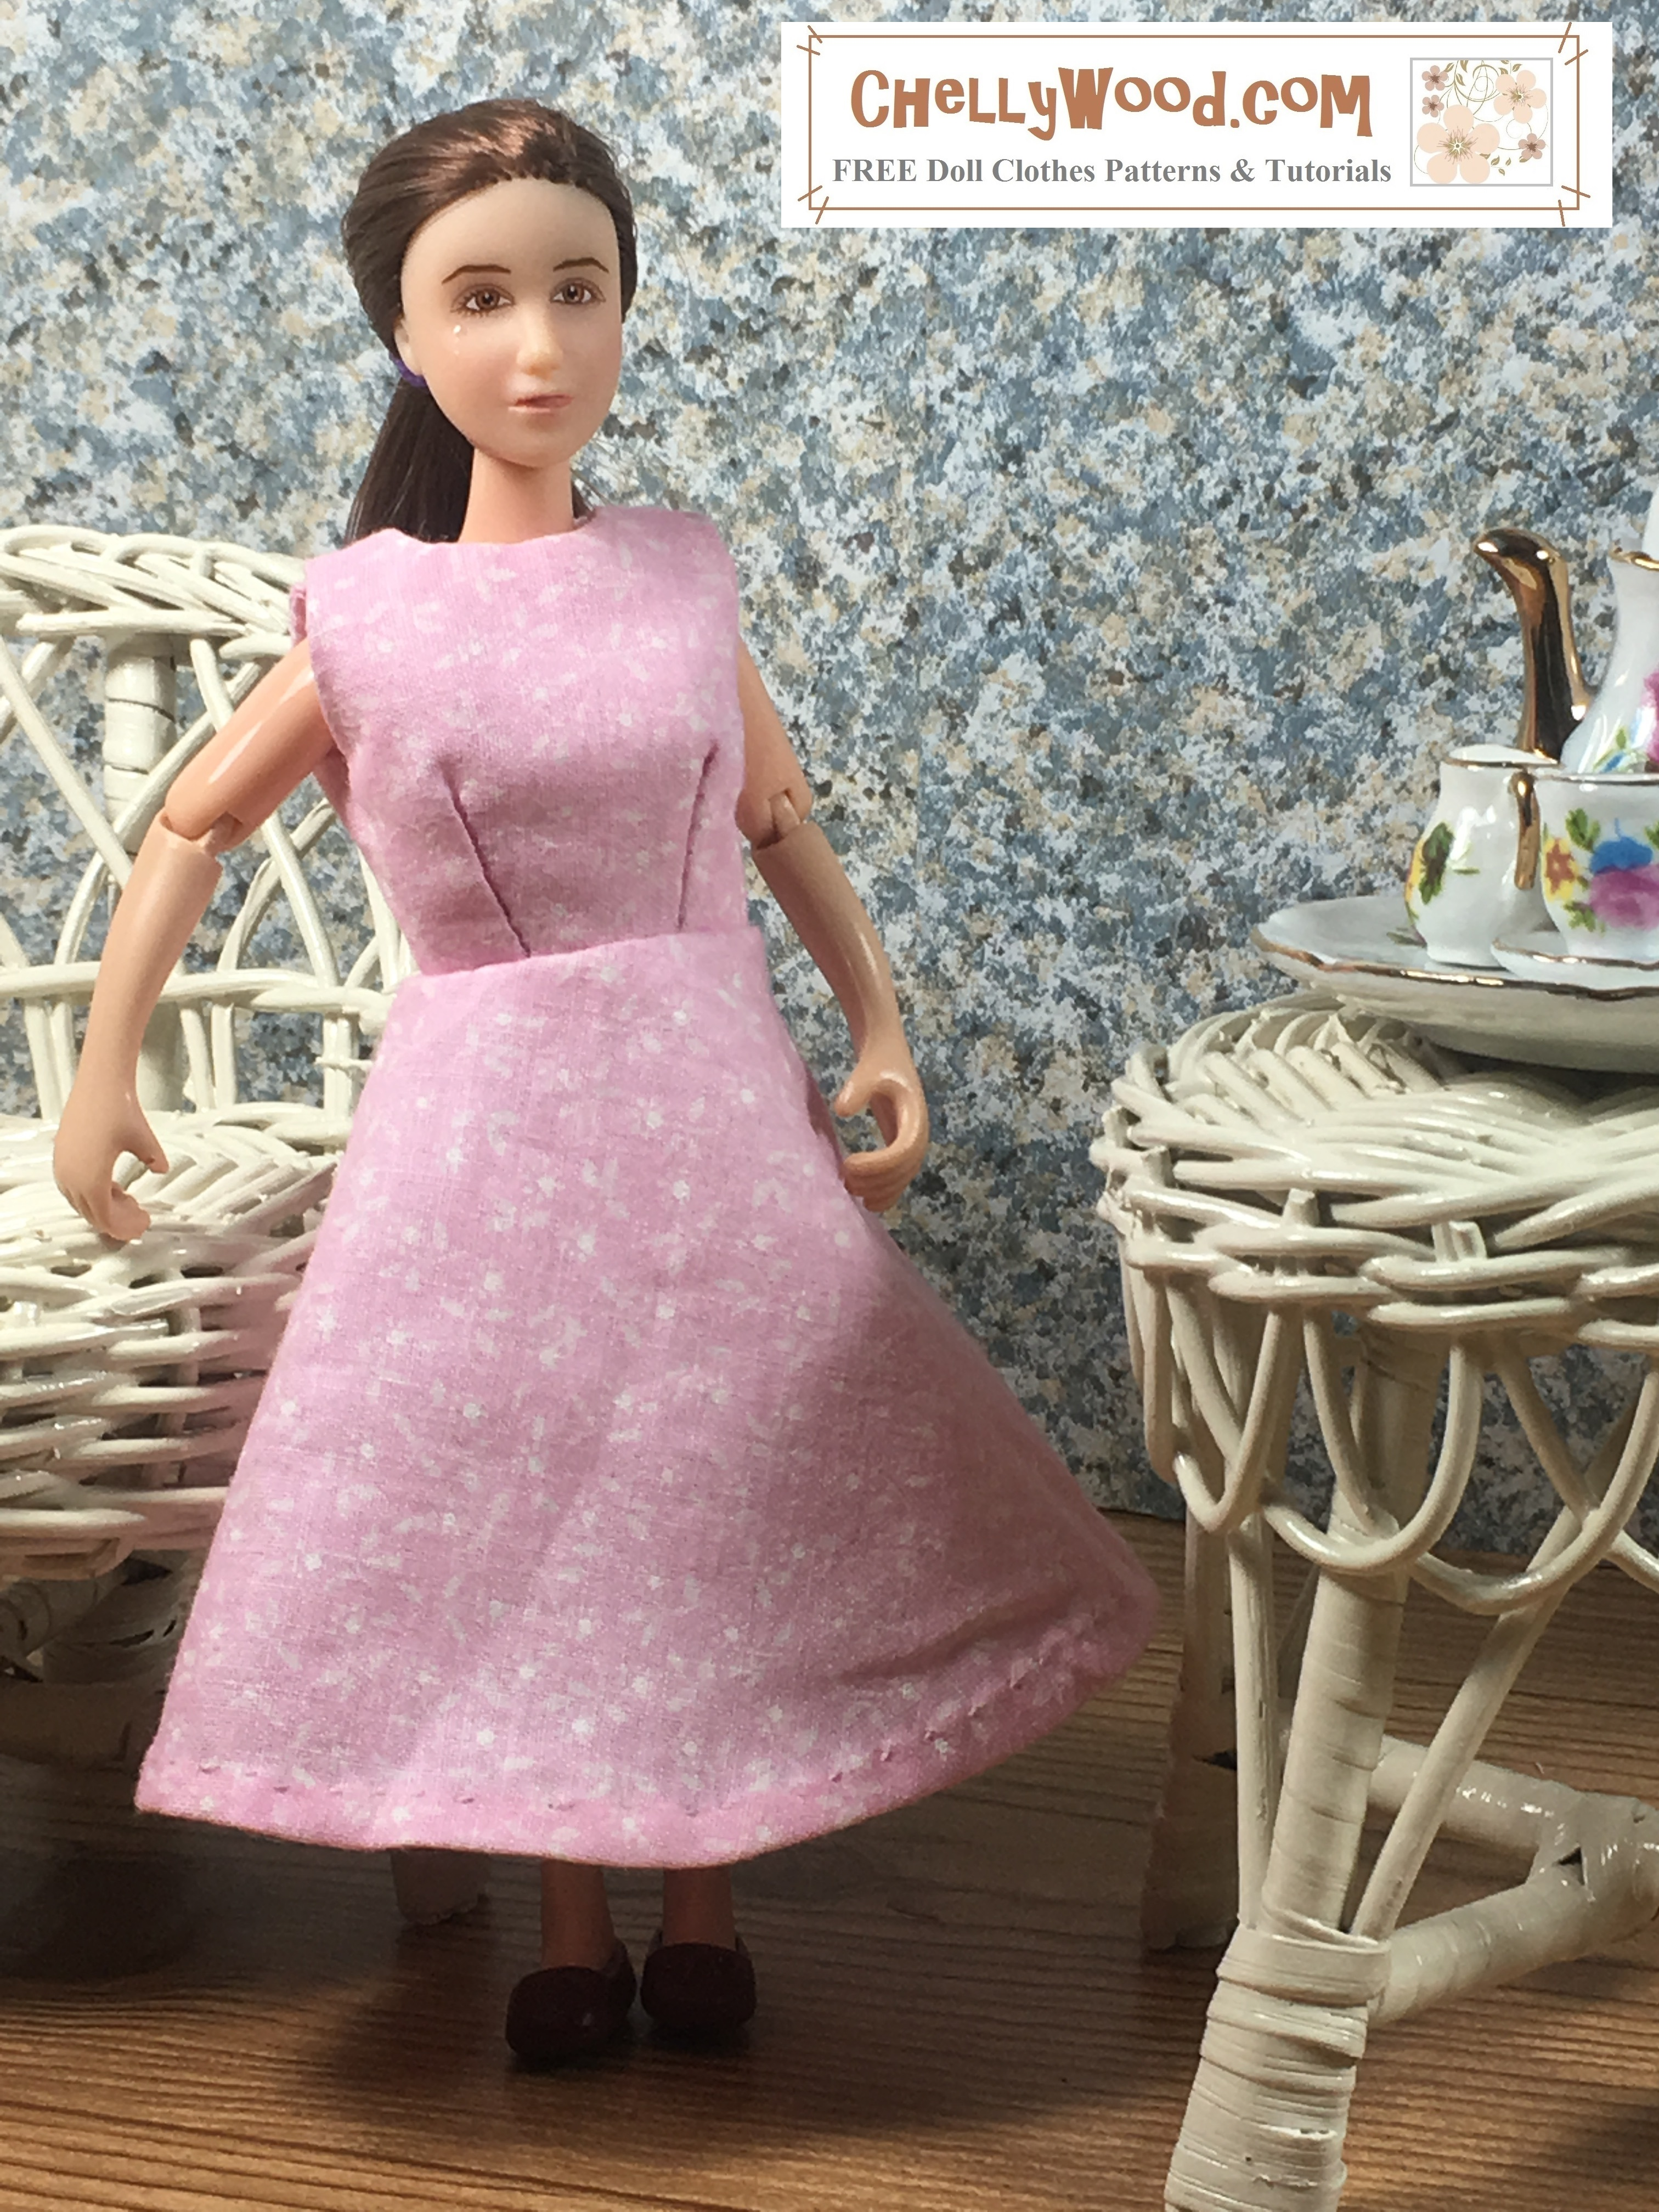 """Click here for all the patterns and tutorials you'll need to make this dress: https: https://wp.me/p1LmCj-GOj Image shows 6"""" Breyer Rider doll wearing an handmade A-line dress and standing in a 1:6 scale diorama that shows the bust of a musician, a classical painting, and is decorated with a wicker table and chair. On the table is a 1:6 scale porcelain tea set for little dolls. The 6"""" Breyer Rider doll wears a dress that has been sewn by hand. Overlay offers the sewing tutorials and free doll clothes patterns website: ChellyWood.com and states that this website has free doll clothes patterns and tutorials for dolls of many shapes and sizes."""